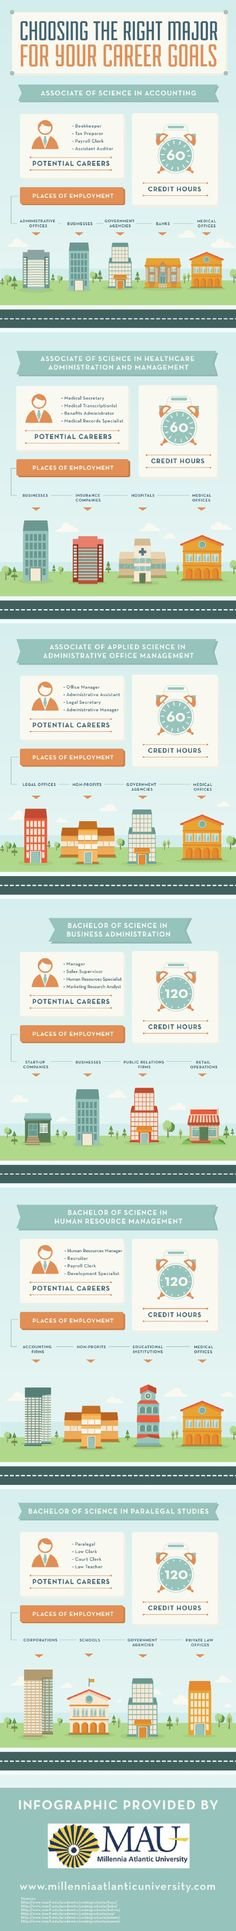 Students interested in becoming managers, sales supervisors, or human resources specialists should enroll in a Bachelor of Science in Business Administration program. This infographic from a Miami business school has more details about different majors.